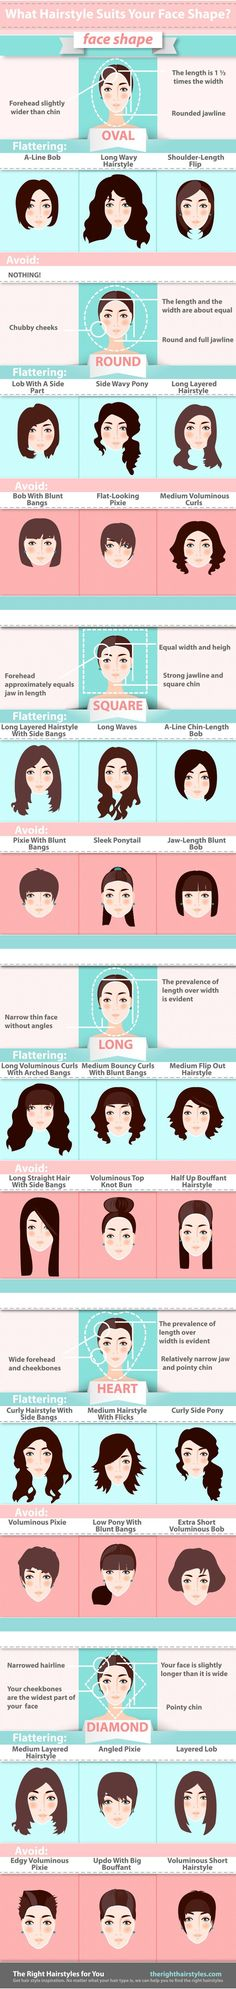 What Hairstyle Suits Your Face Shape #hair | thebeautyspotqld.com.au